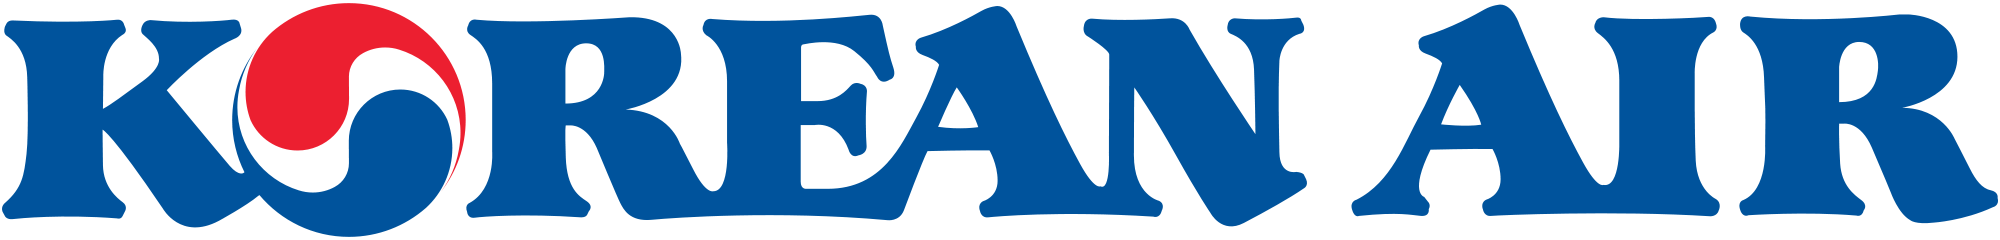 Ana airlines logo clipart vector royalty free download Through Check-in - Bangkok Airways vector royalty free download